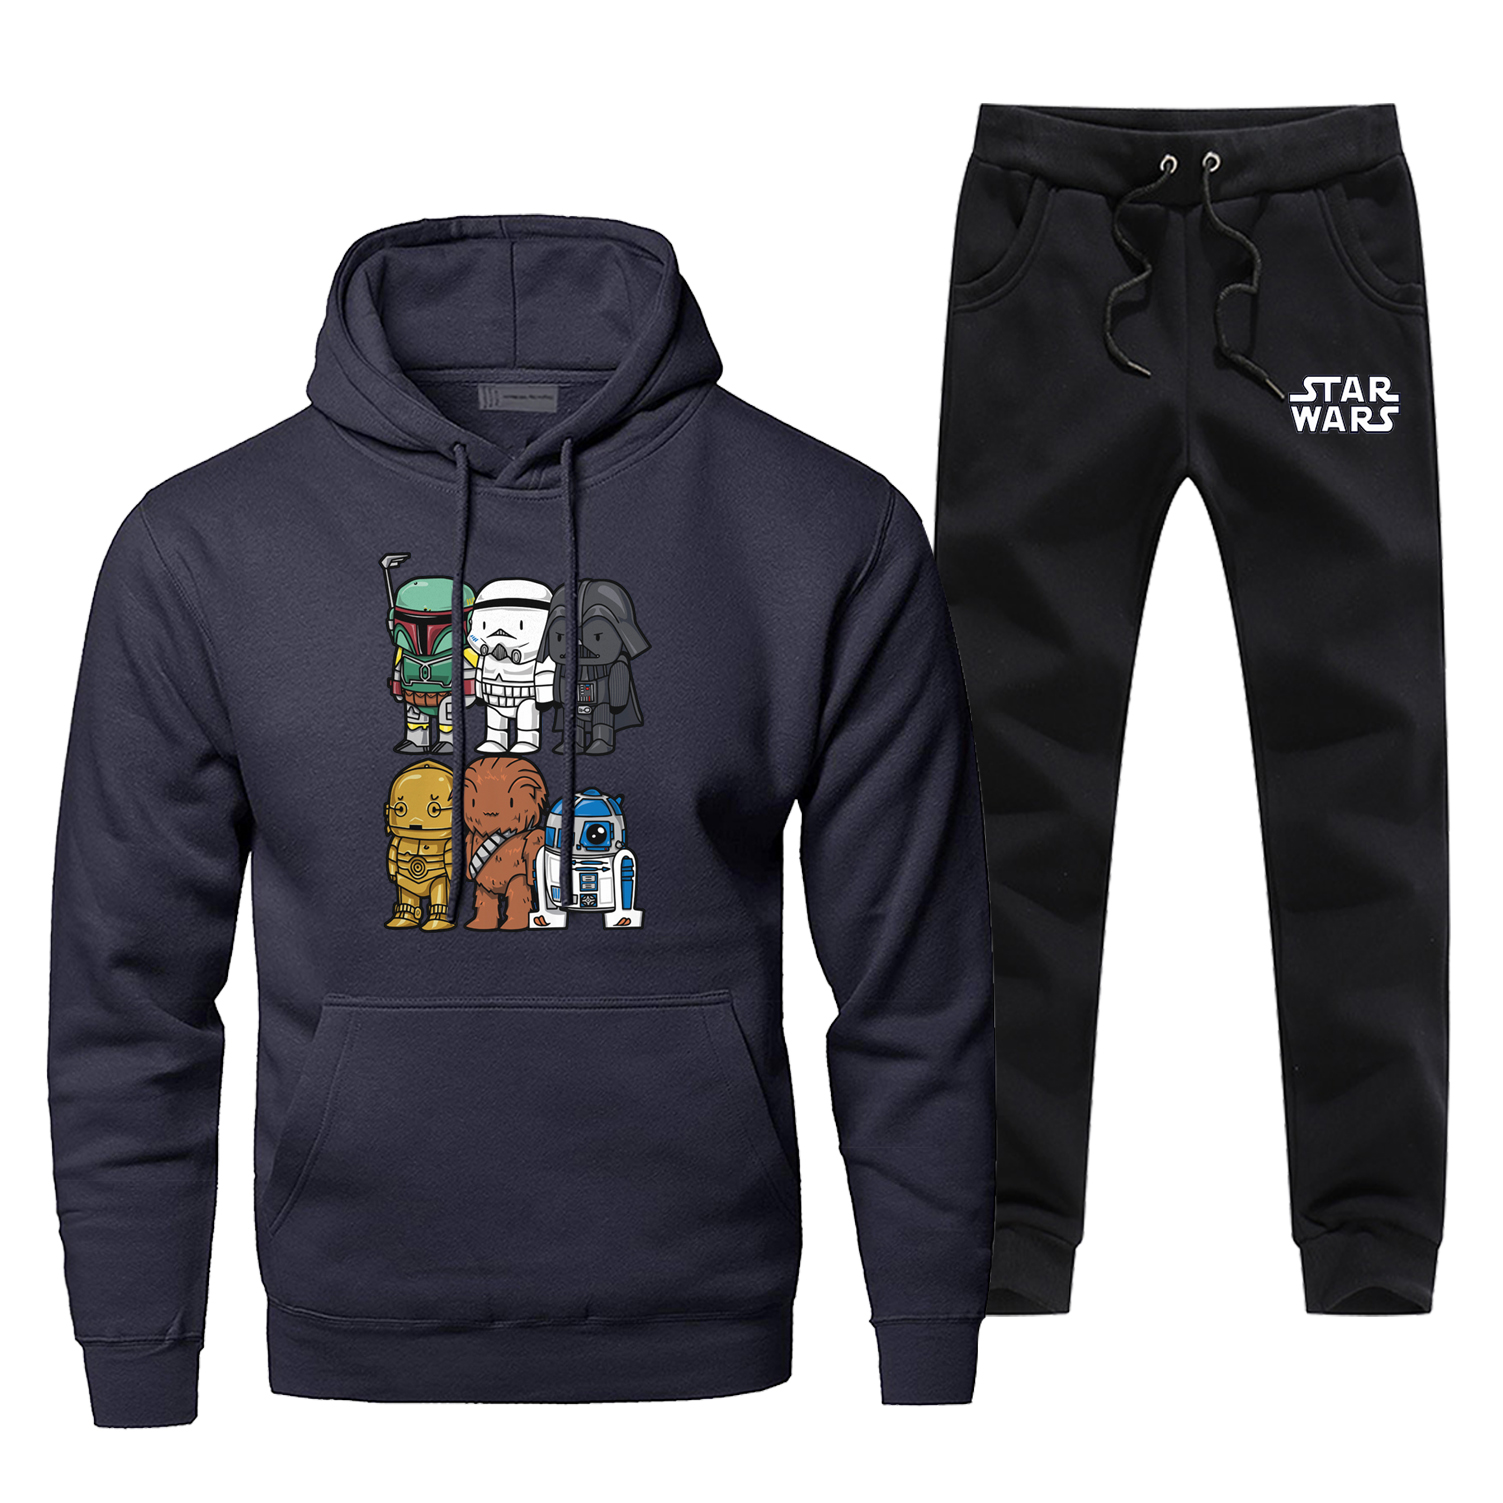 Star Wars Cartoon Print Hoodies Sets Fashion Movie Pants Sweatshirts Comfortable Men's Full Suit Tracksuit Fleece Casual Men Set